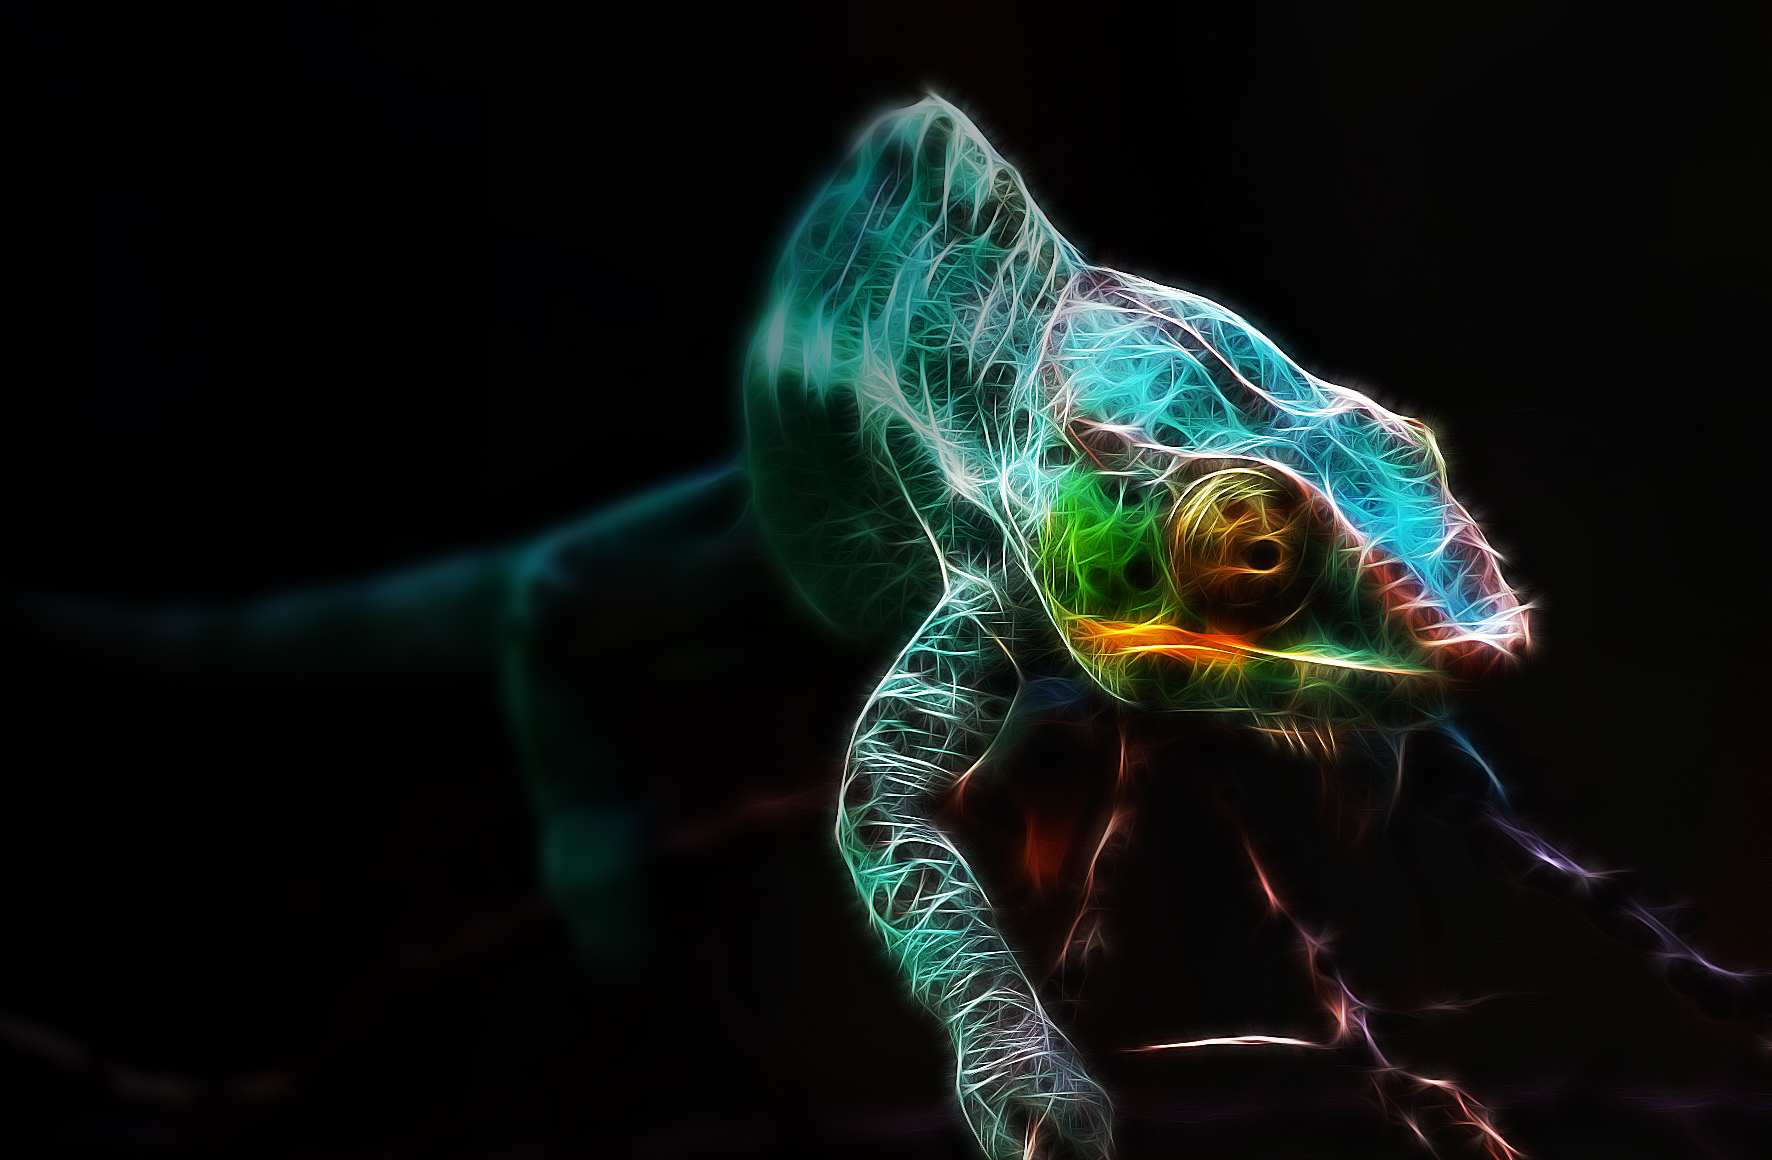 Chameleon Wallpapers and Backgrounds Image